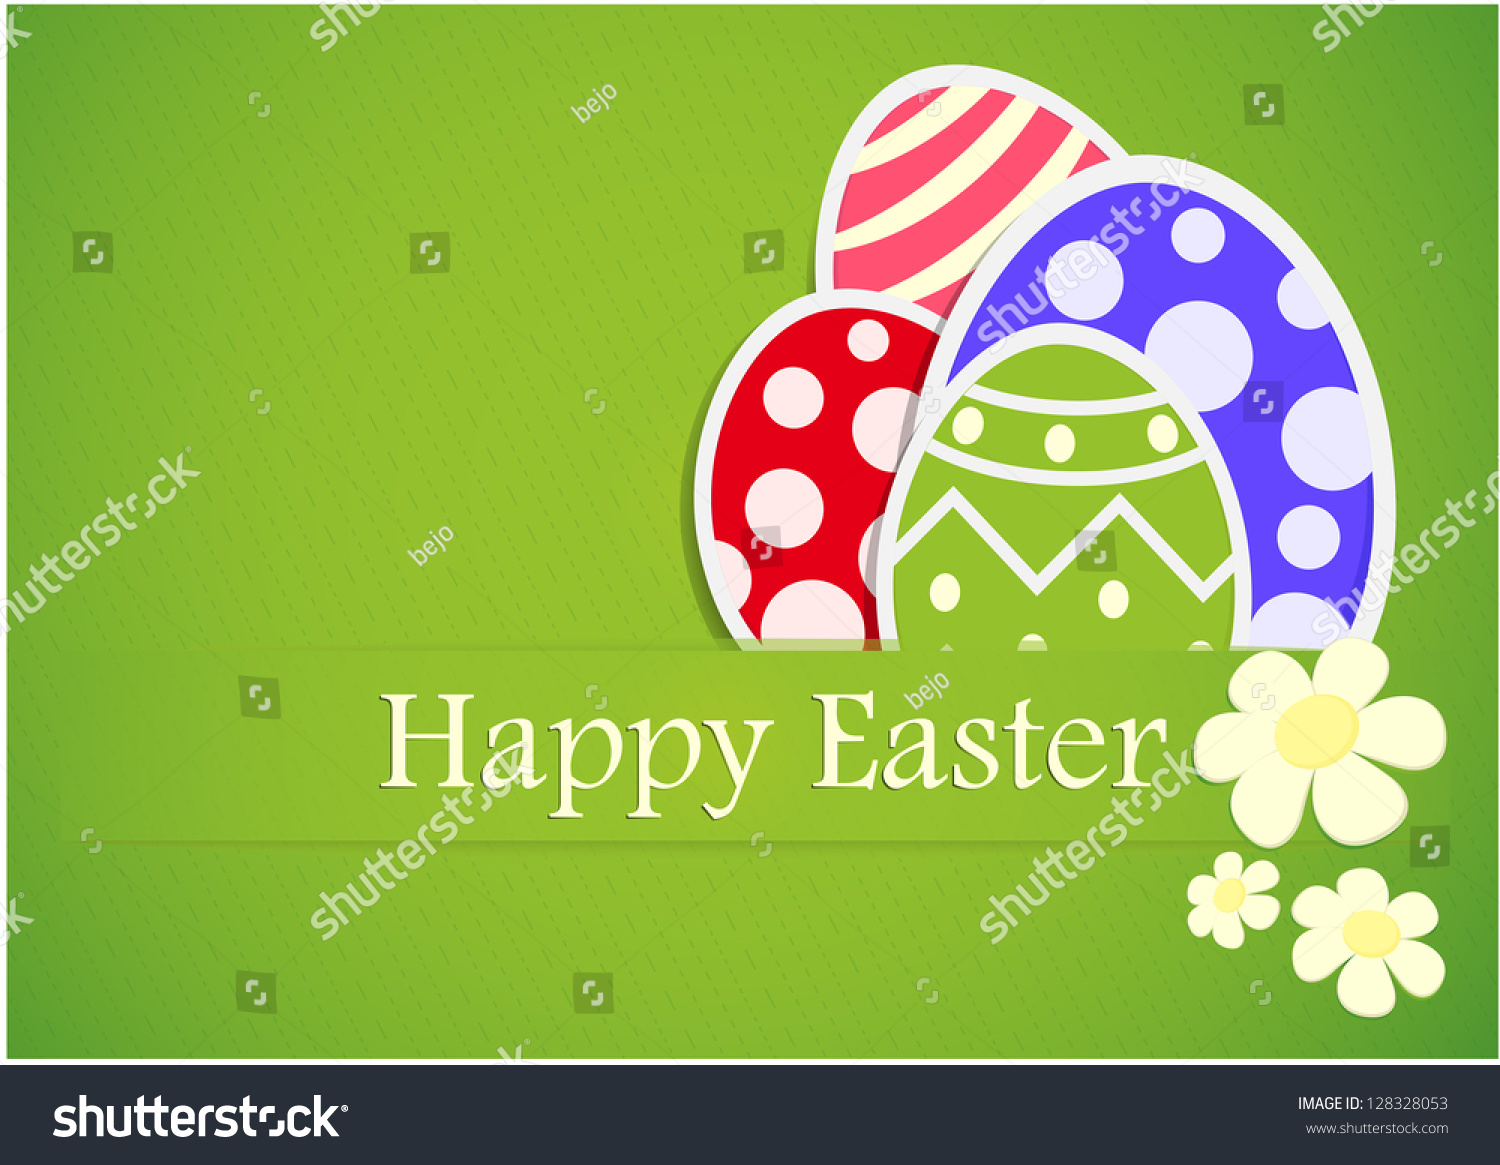 Easter gift paper stock vector 128328053 shutterstock easter gift paper negle Choice Image